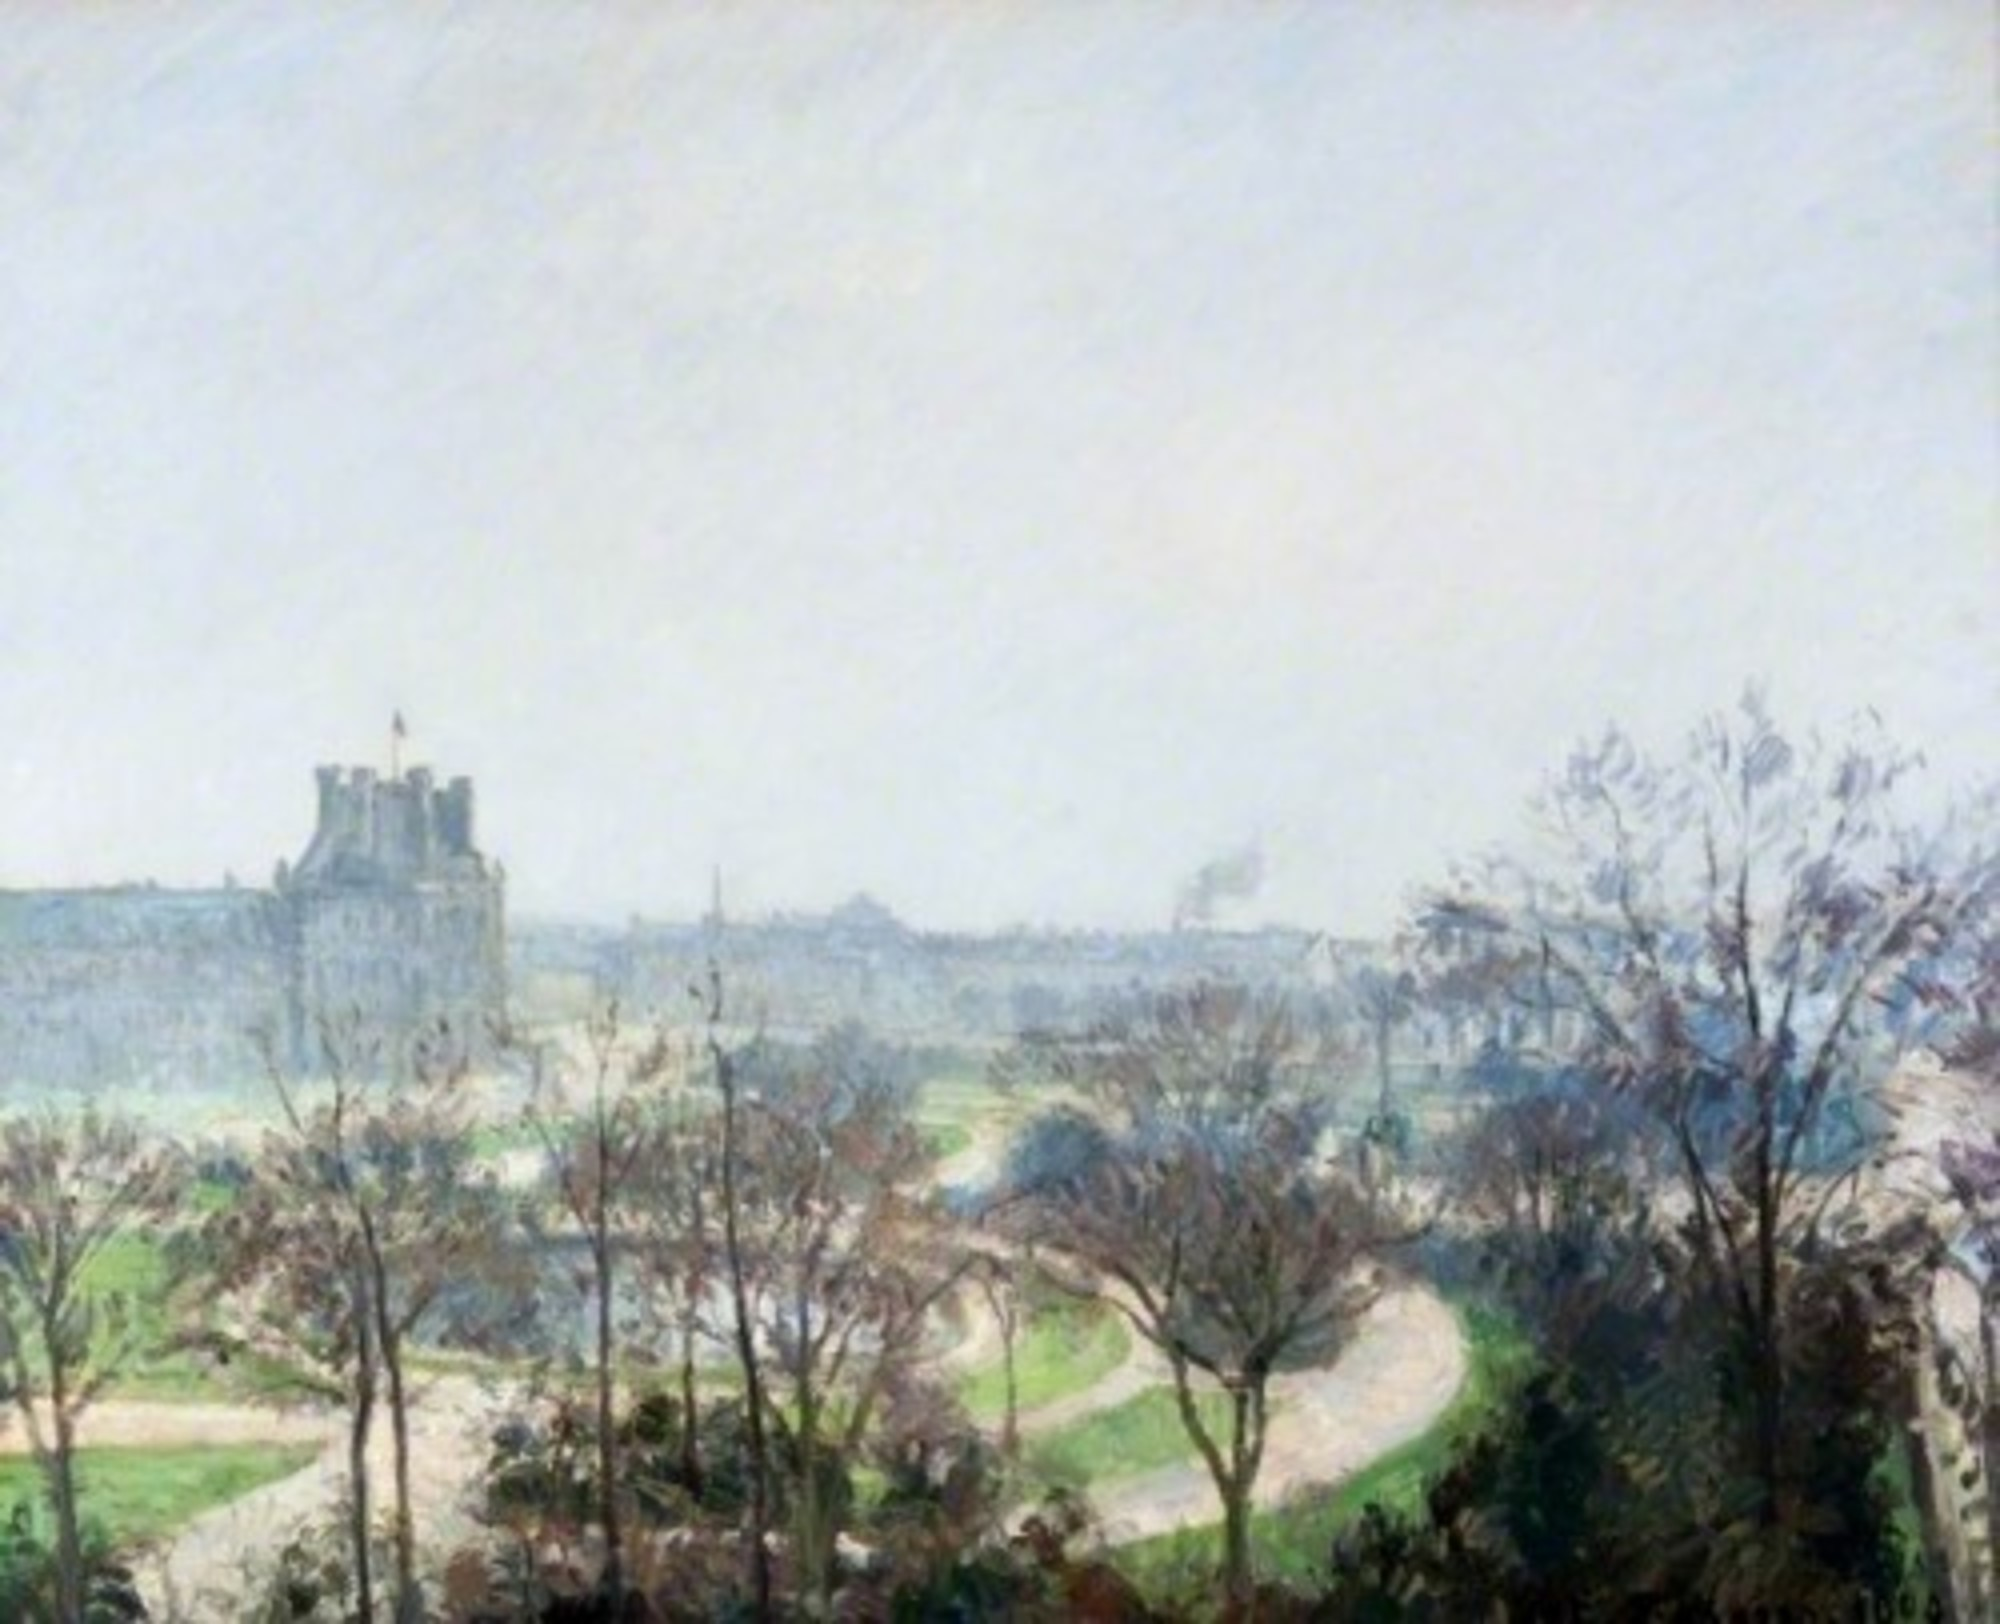 Pissarro---The-Tuileries-Gardens-Paris-1900.jpg